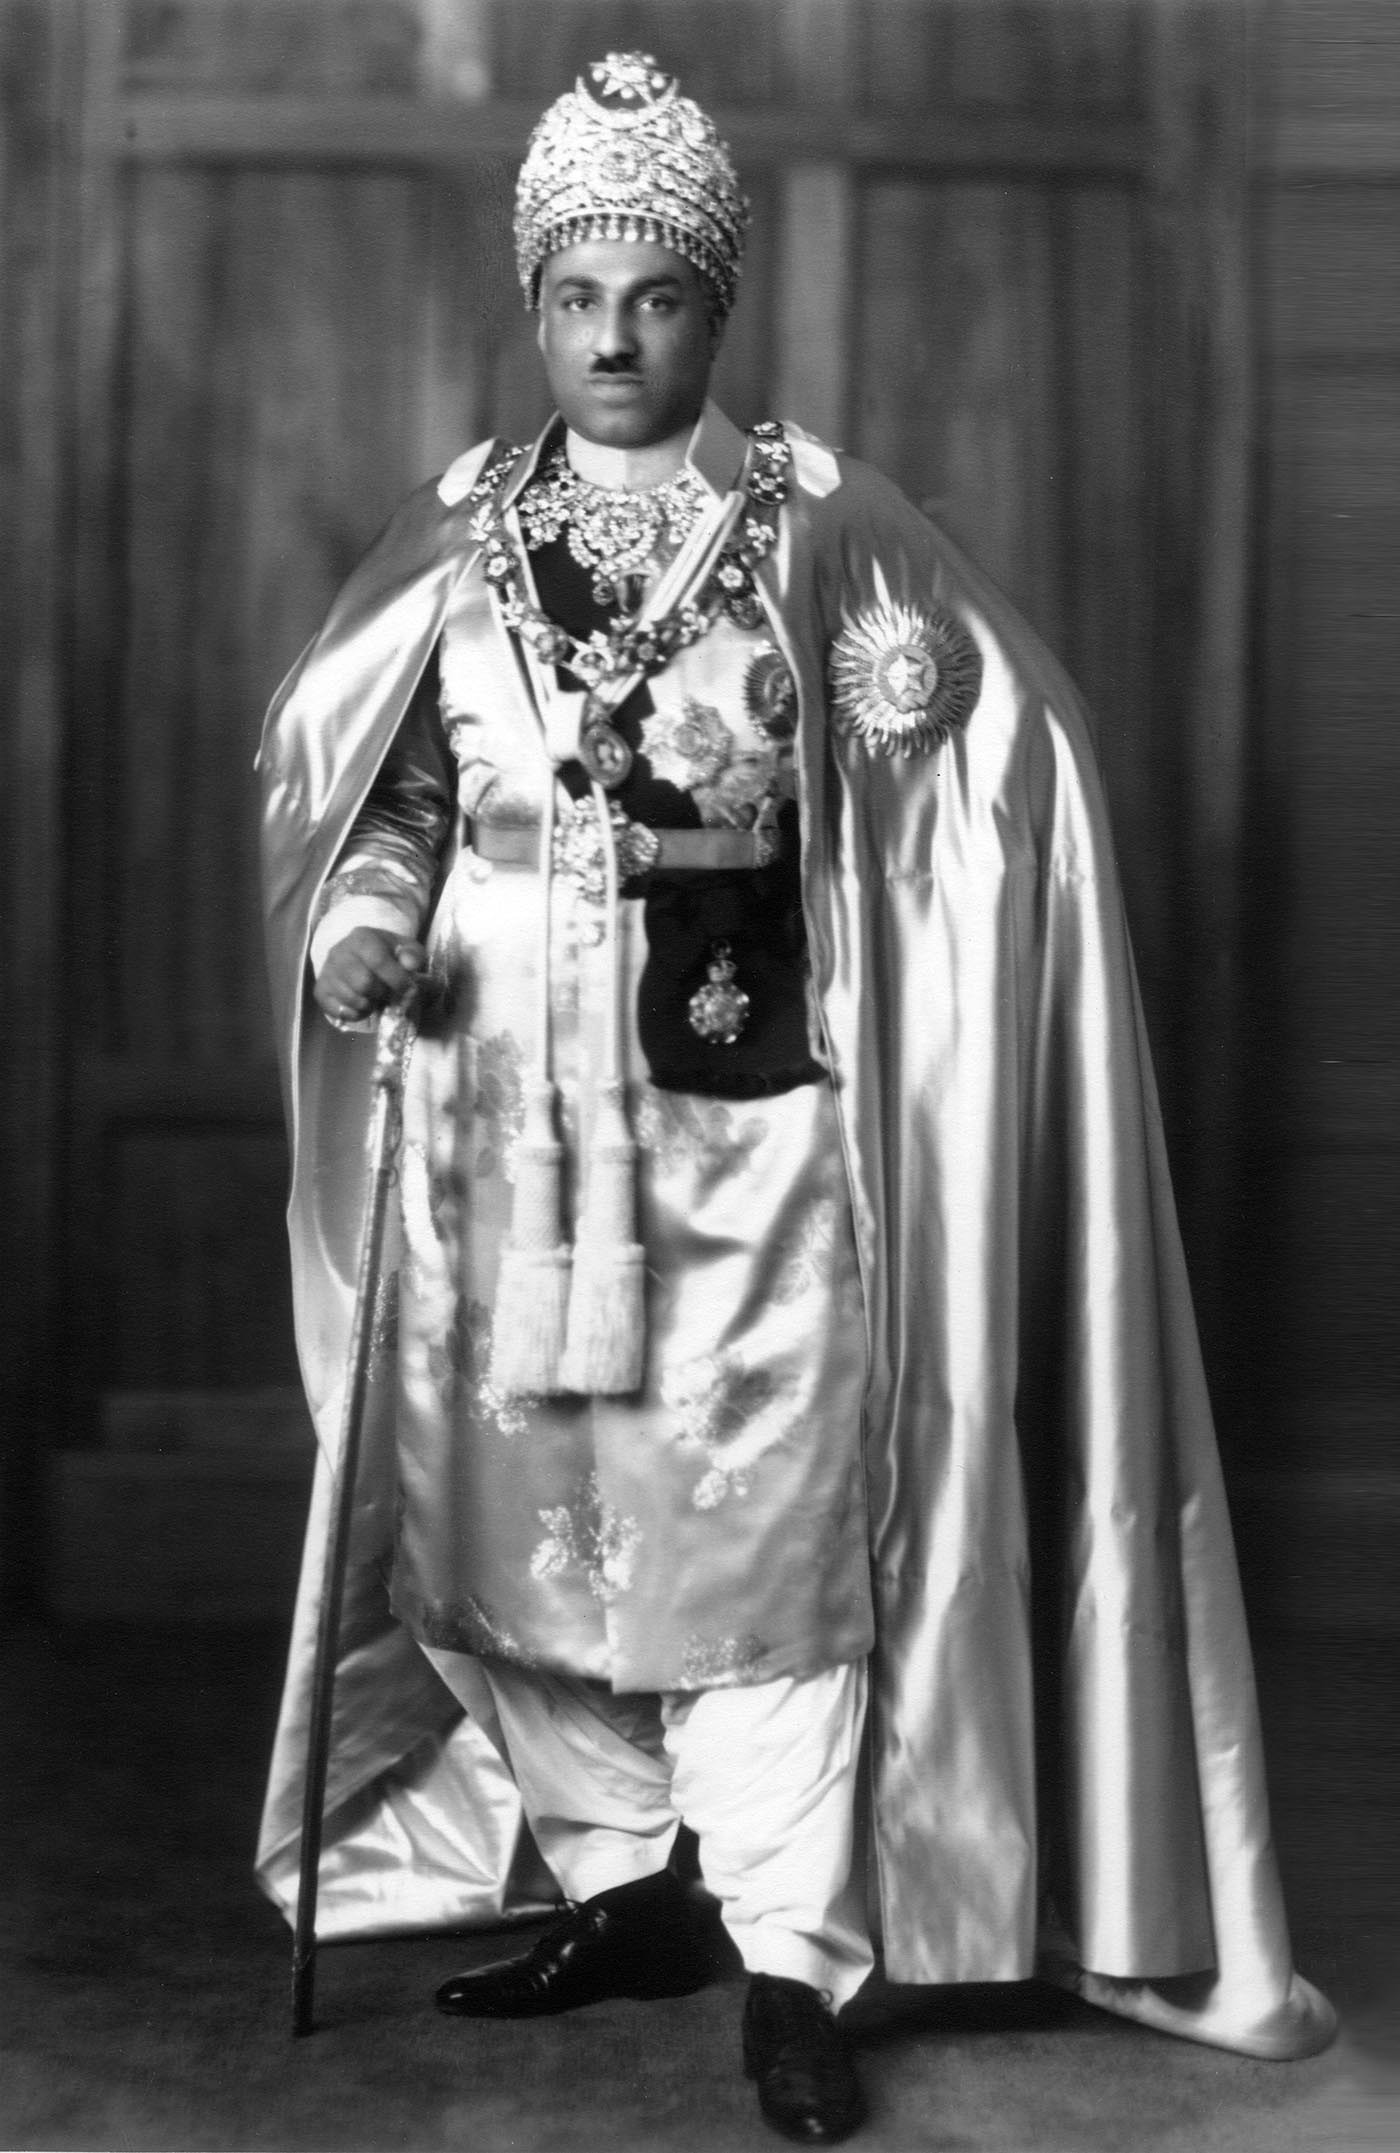 The Amir of Bahawalpur, Nawab Sadiq Mohammad Khan Abbasi V in full state regalia. — Courtesy Princess Yasmien Abbasi Archive London